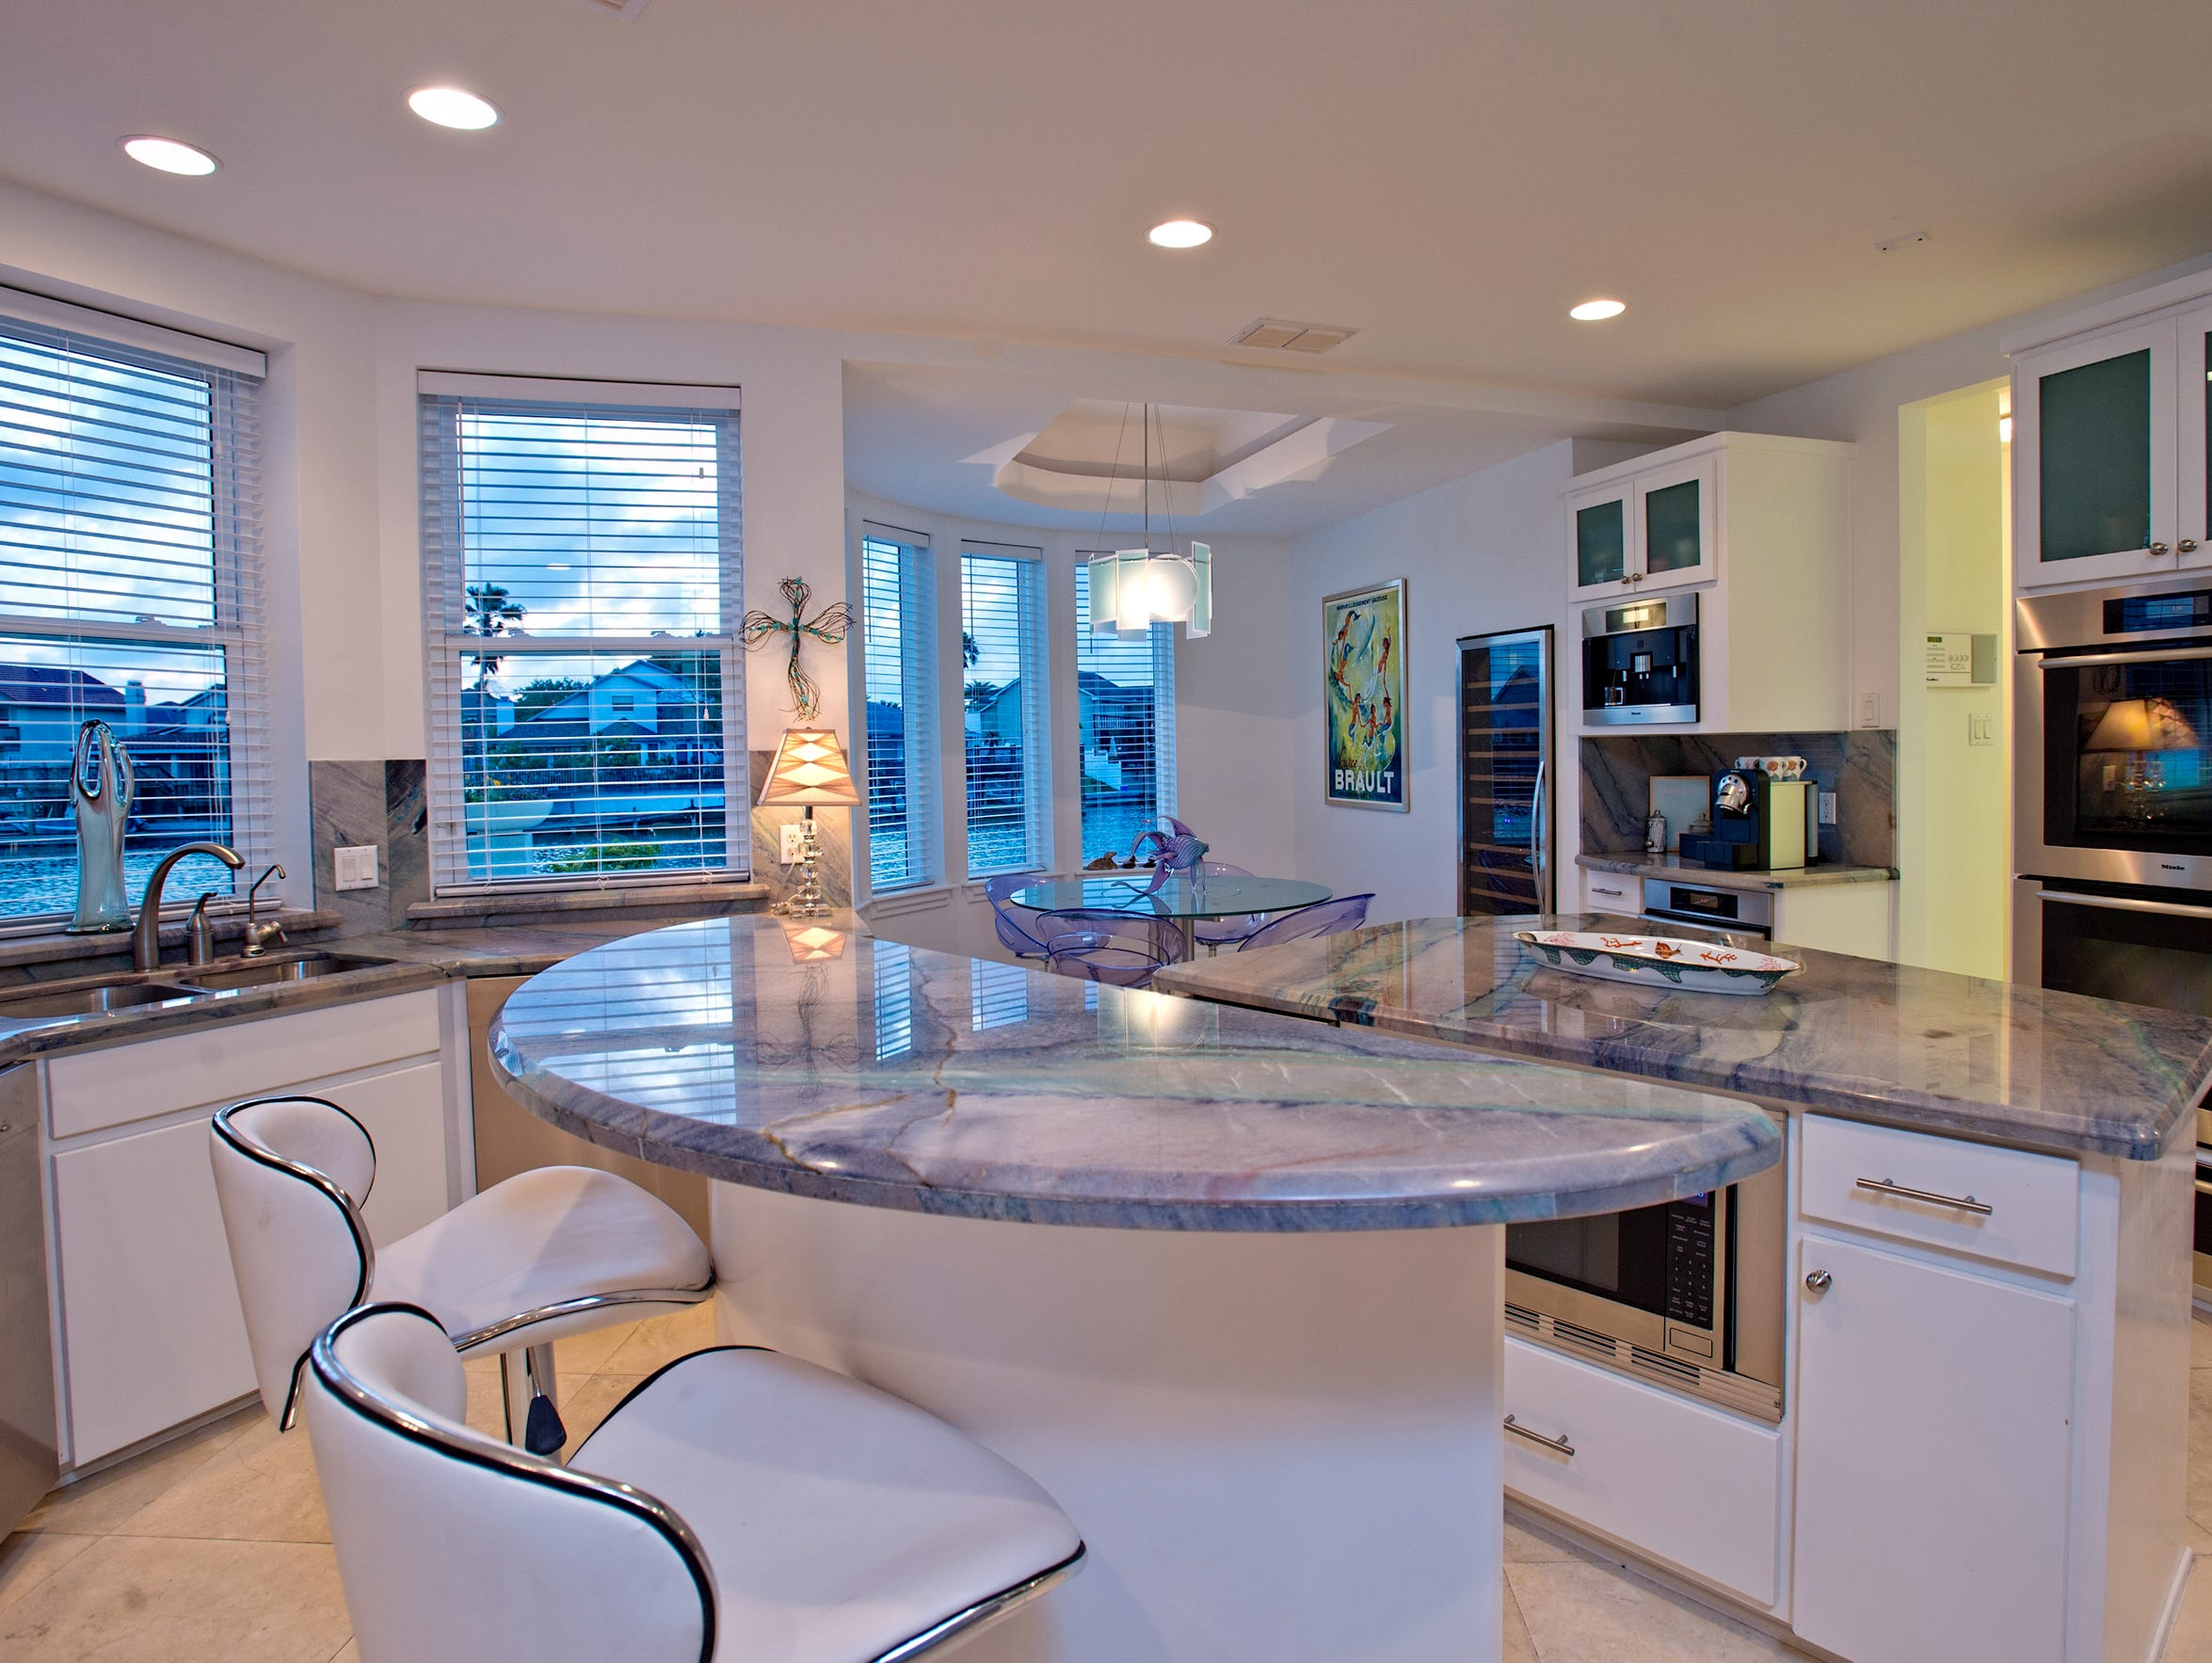 The kitchen is the hub for gatherings with family and